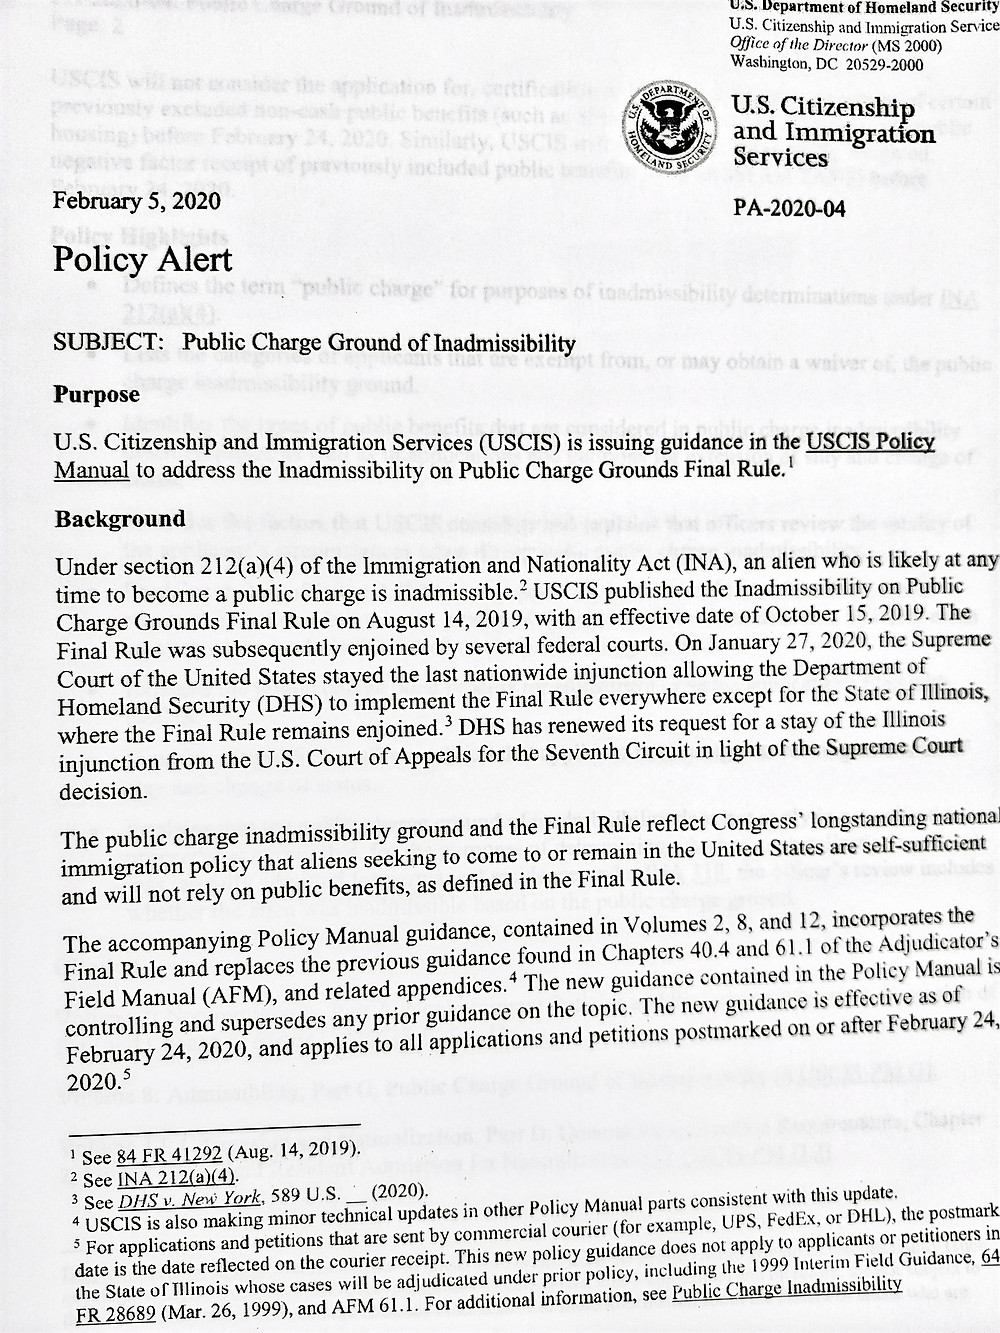 February 5, 2020 USCIS Policy Alert Public Charge